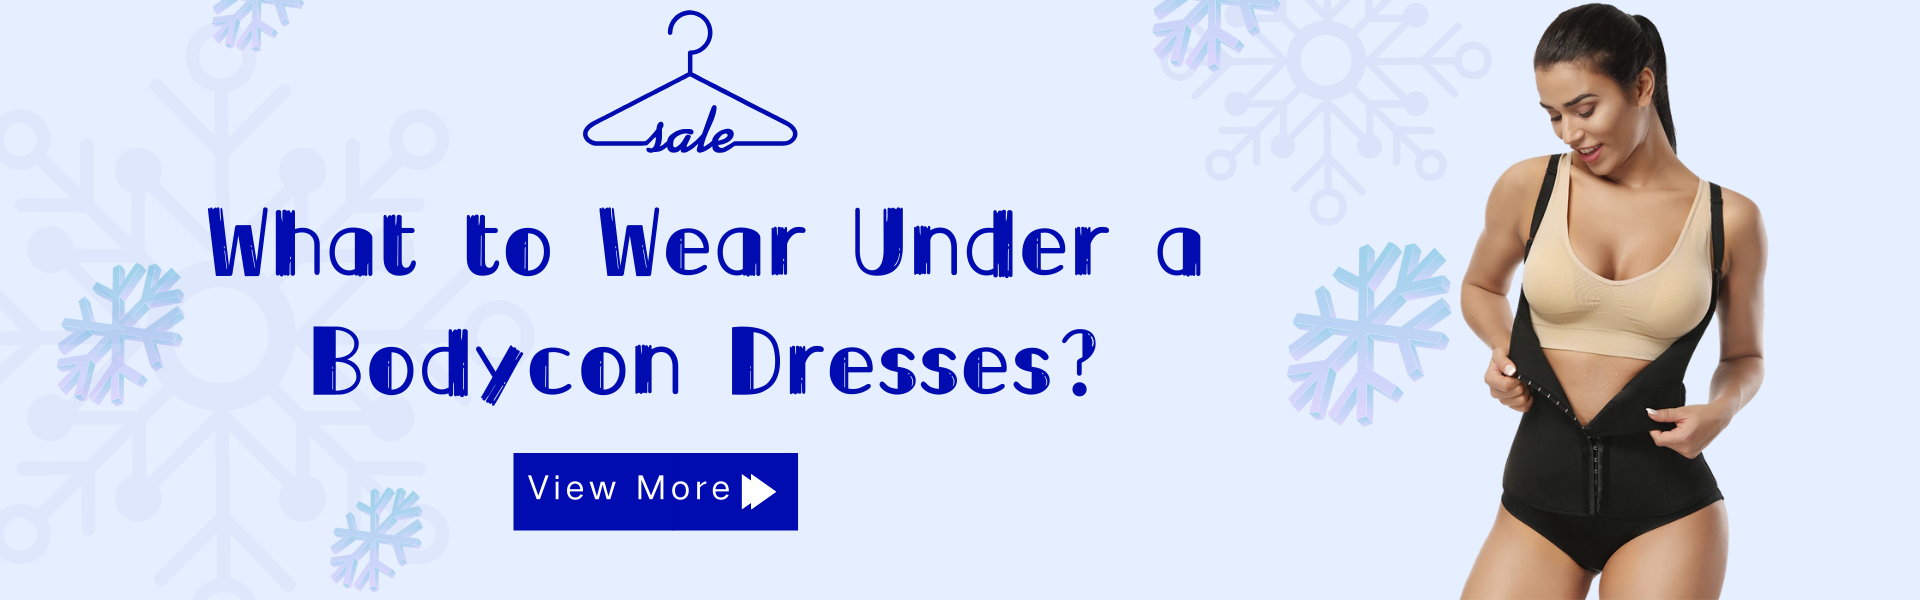 What to Wear Under a Bodycon Dresses?